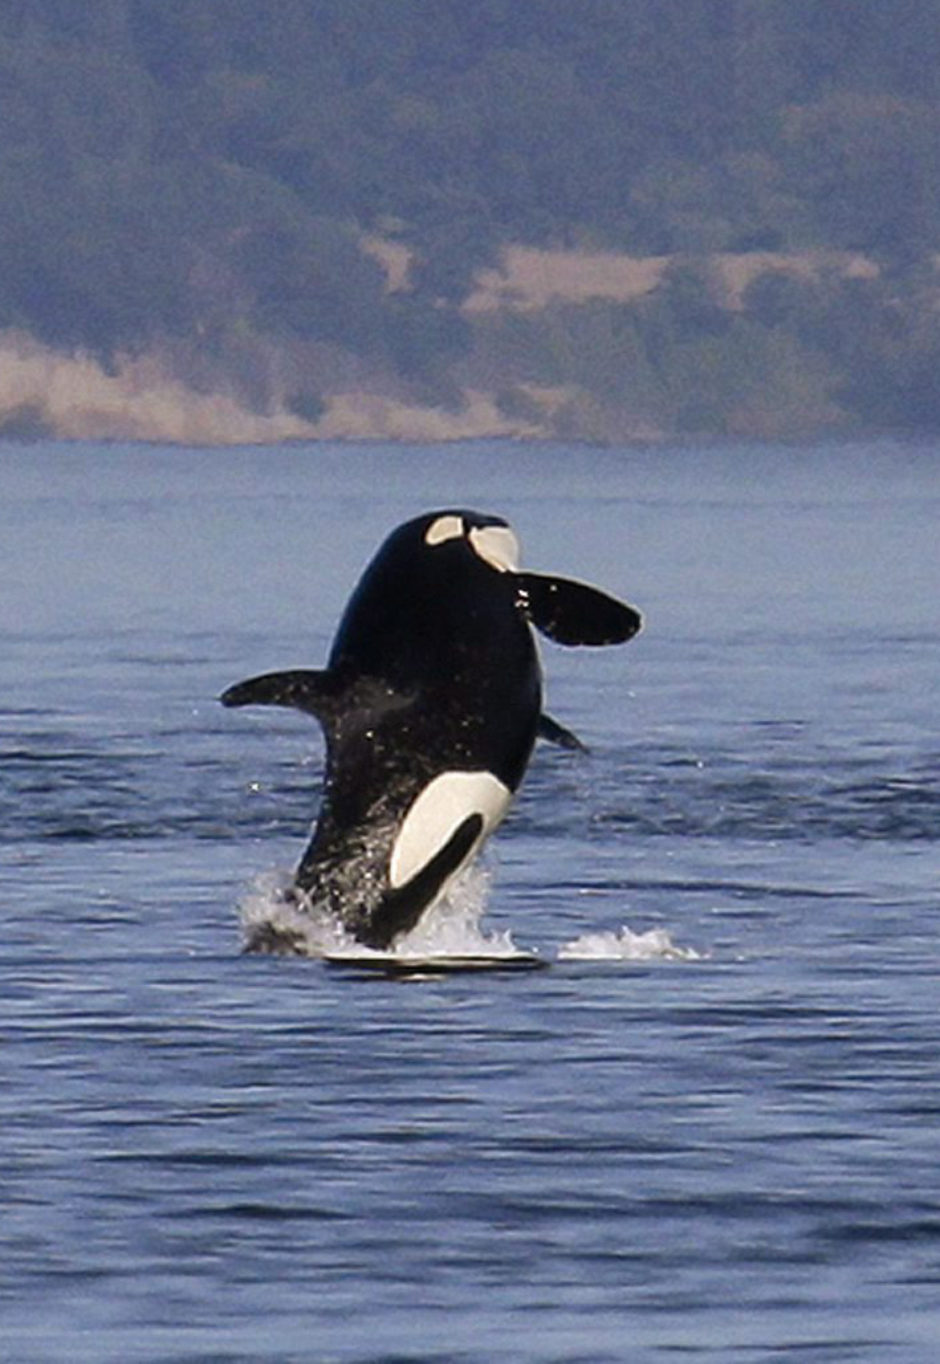 In this file photo taken July 31, 2015, an orca whale leaps out of the water near a whale watching boat in the Salish Sea in the San Juan Islands, Wash.